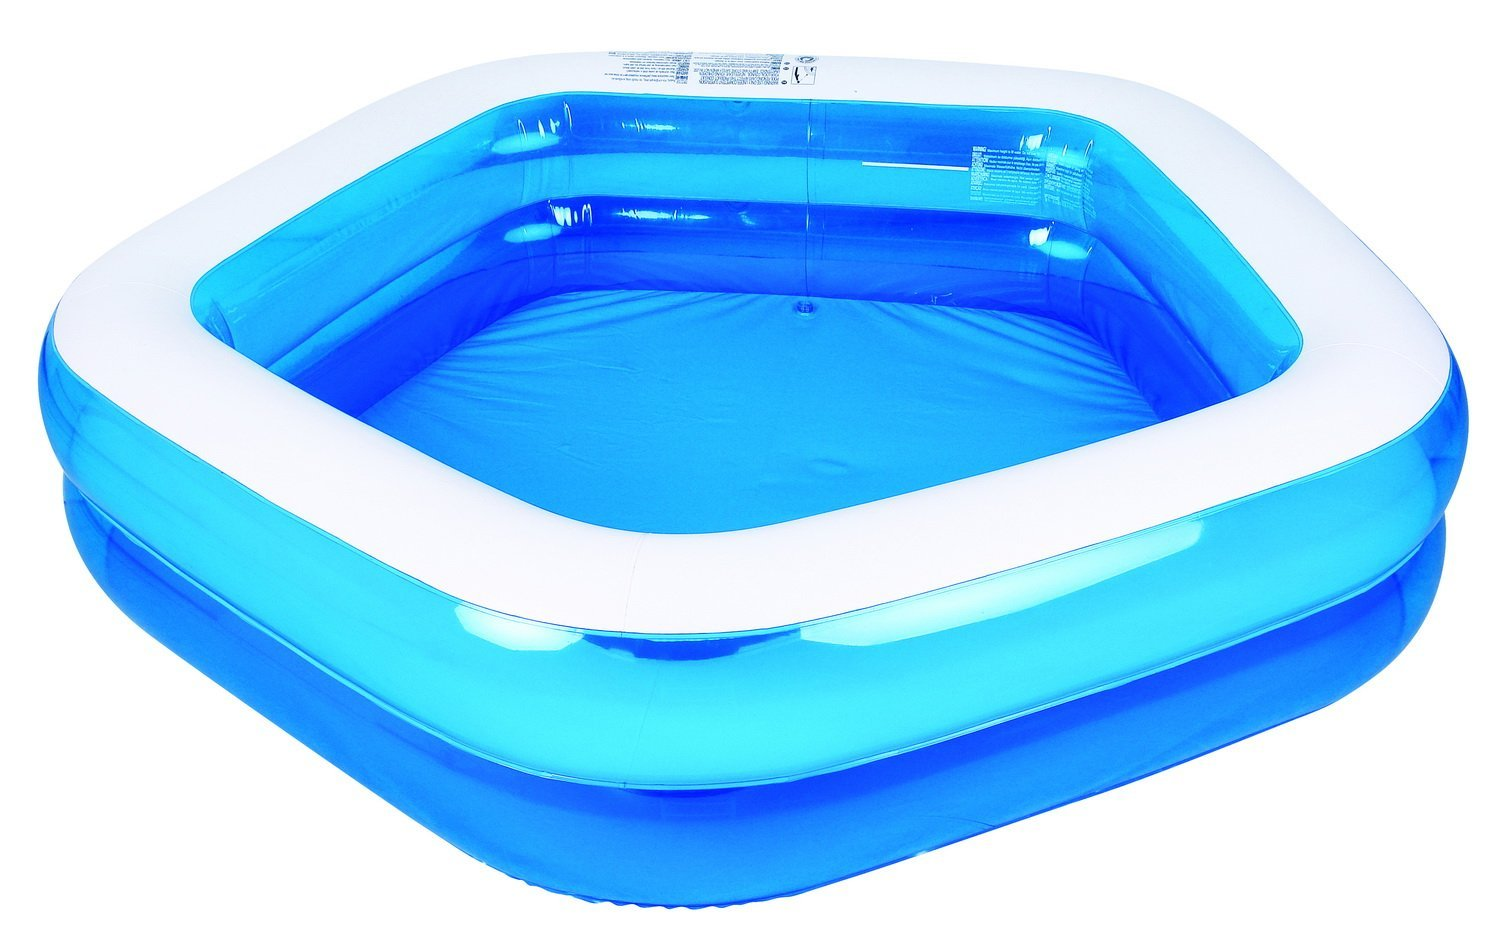 Ocala Toddler Drowns In Inflatable Pool Newstalk Florida